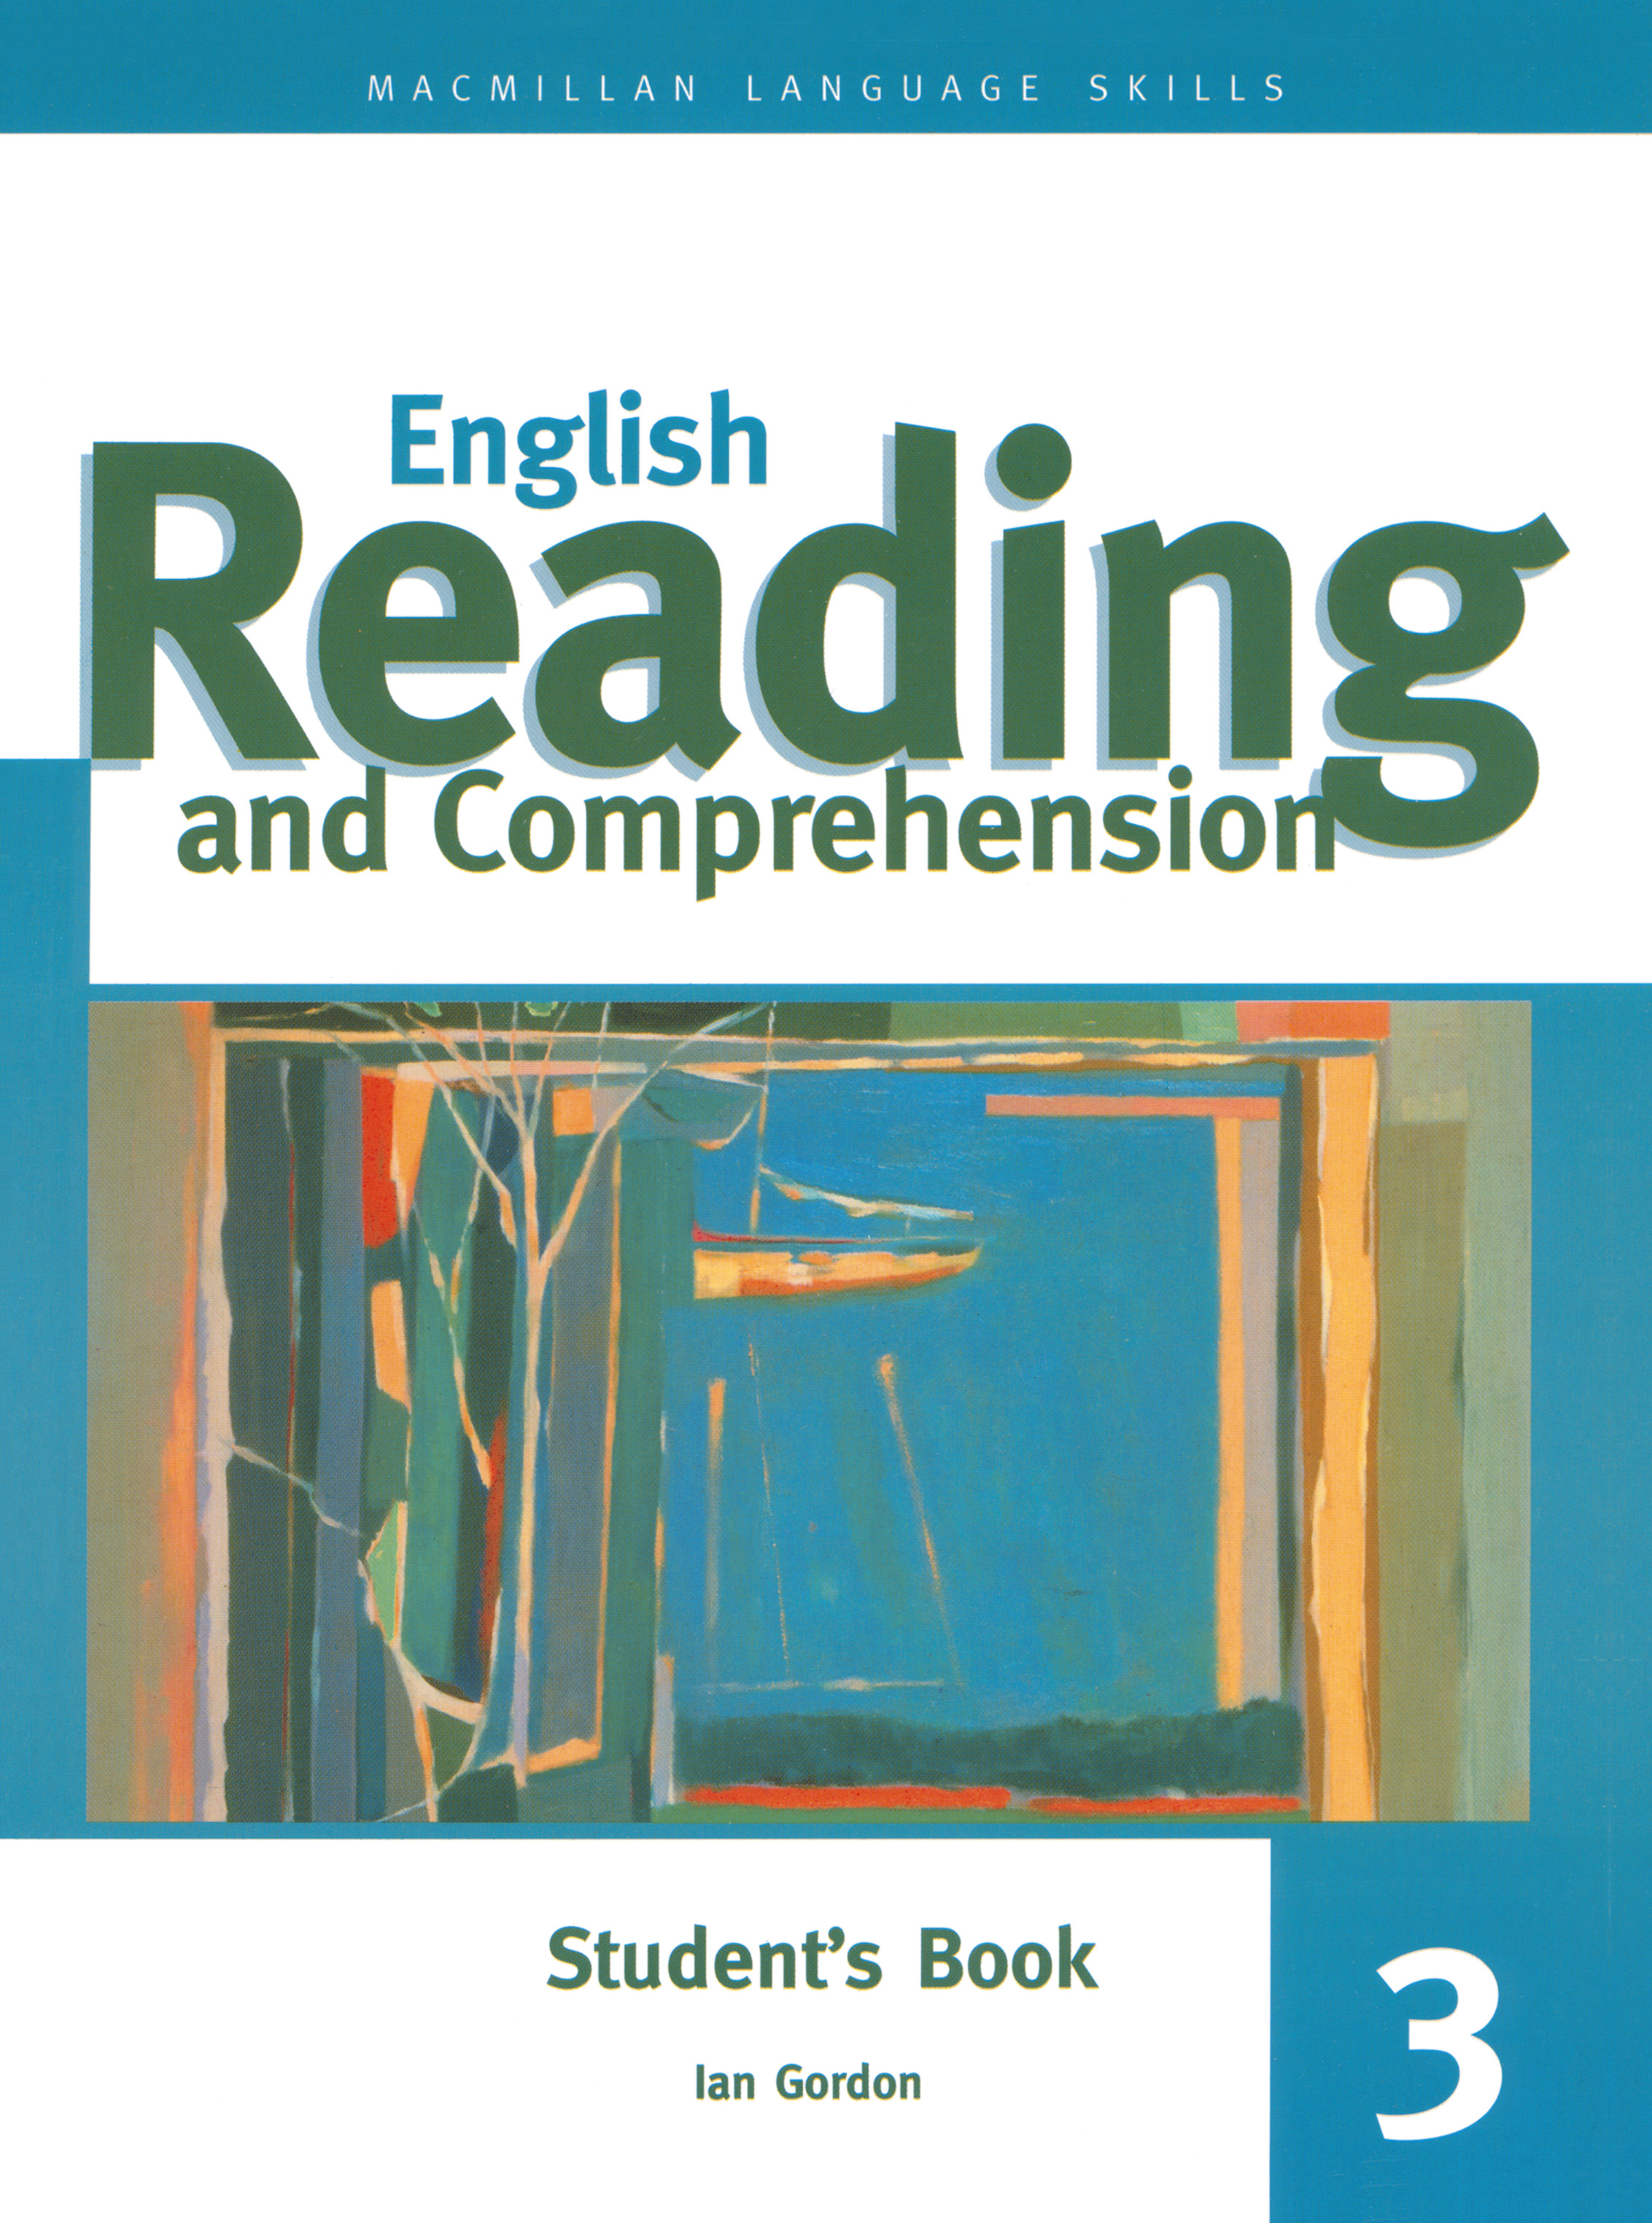 English Reading and Comprehension